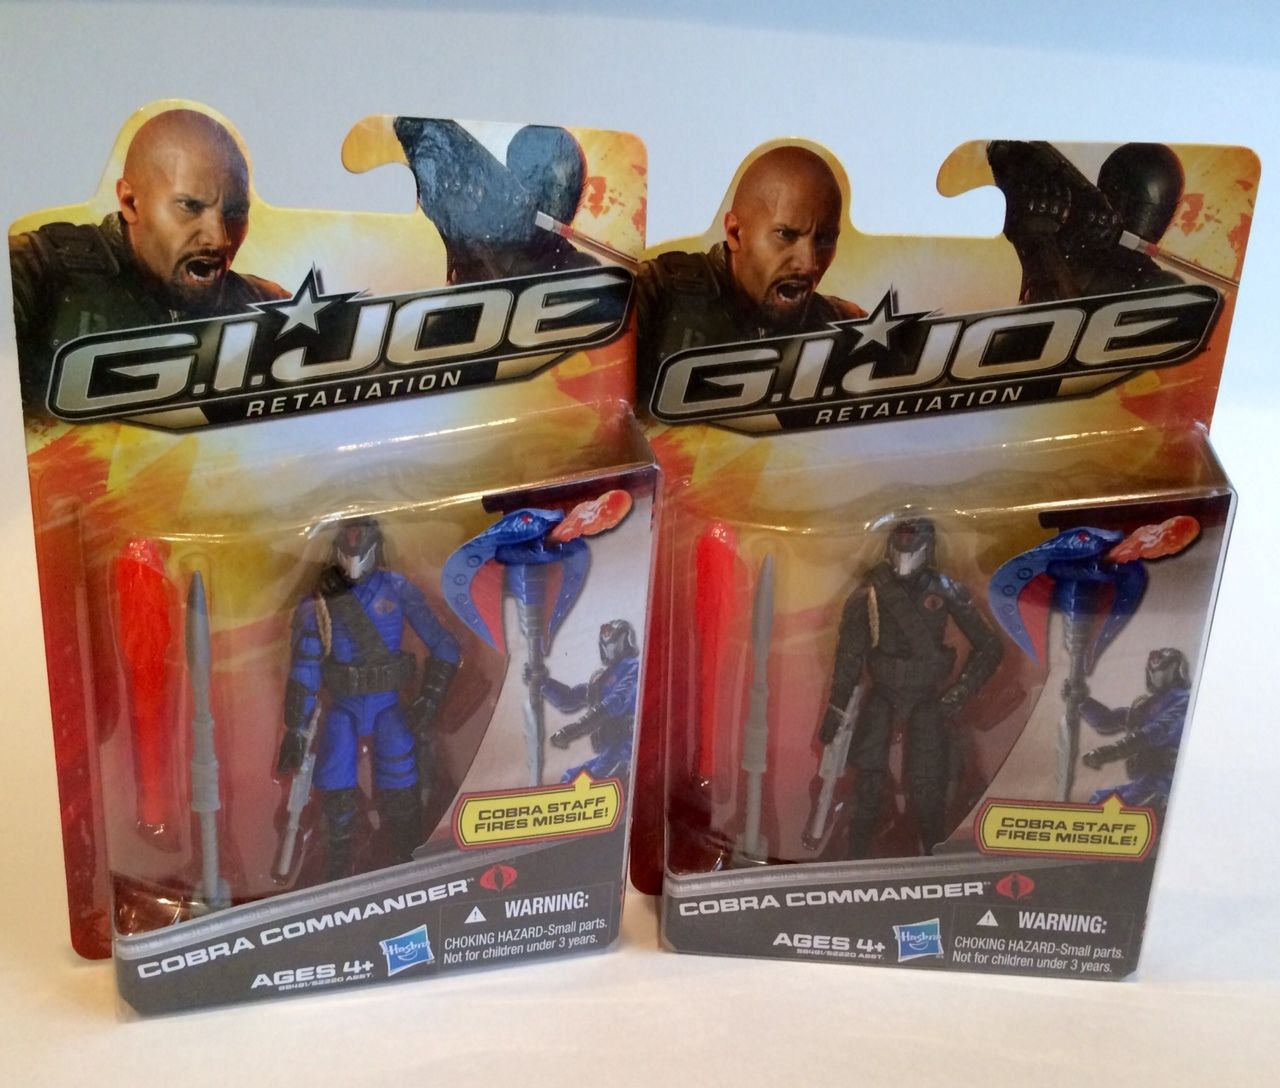 Matty's Ongoing Sales Thread-gi_joe.jpg